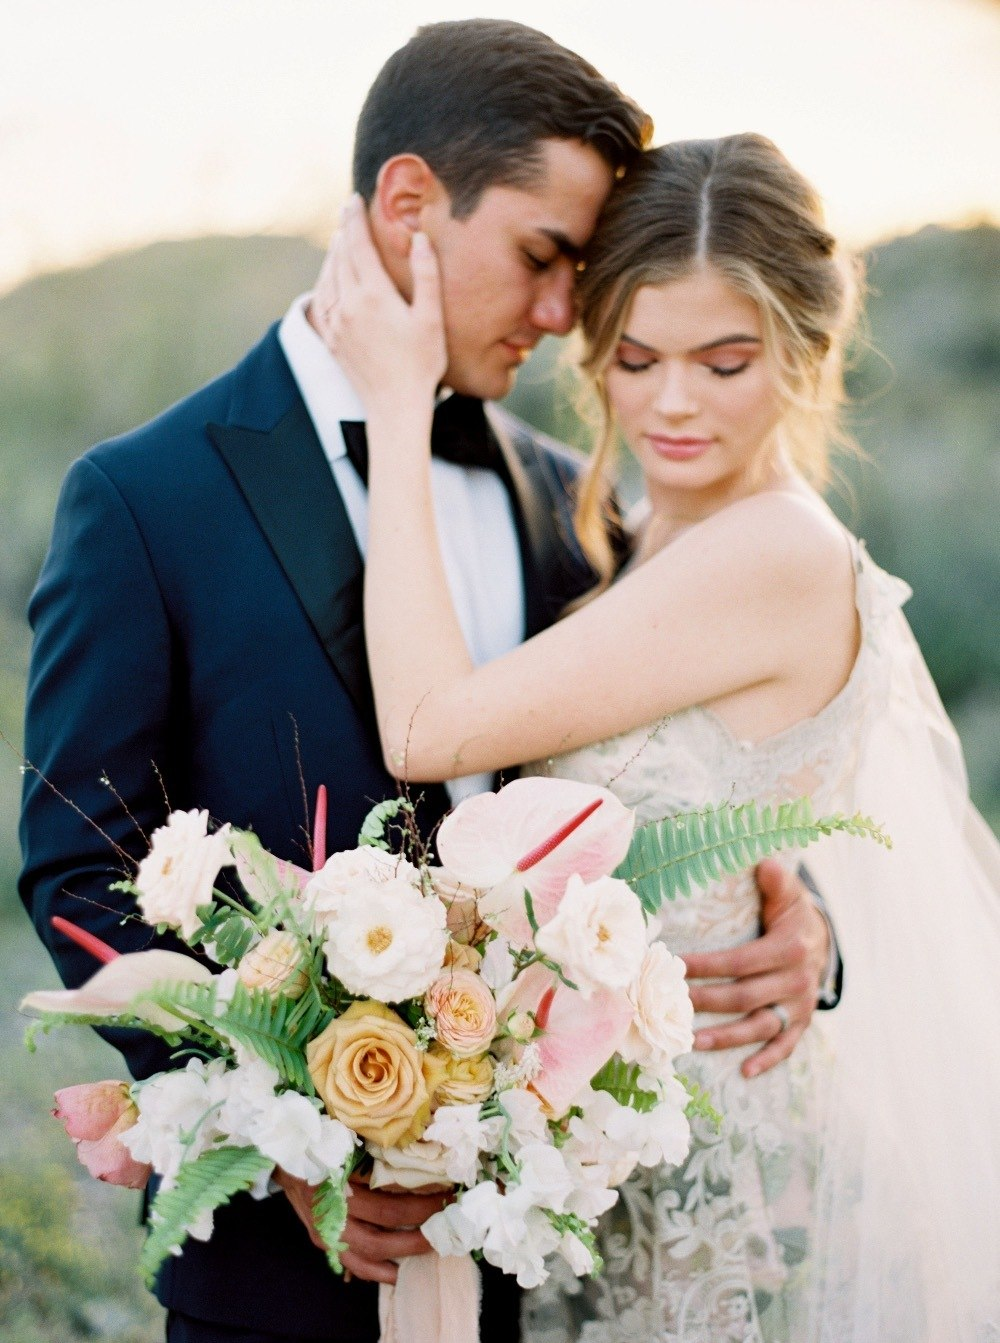 bride and groom portrait with bridal bouquet